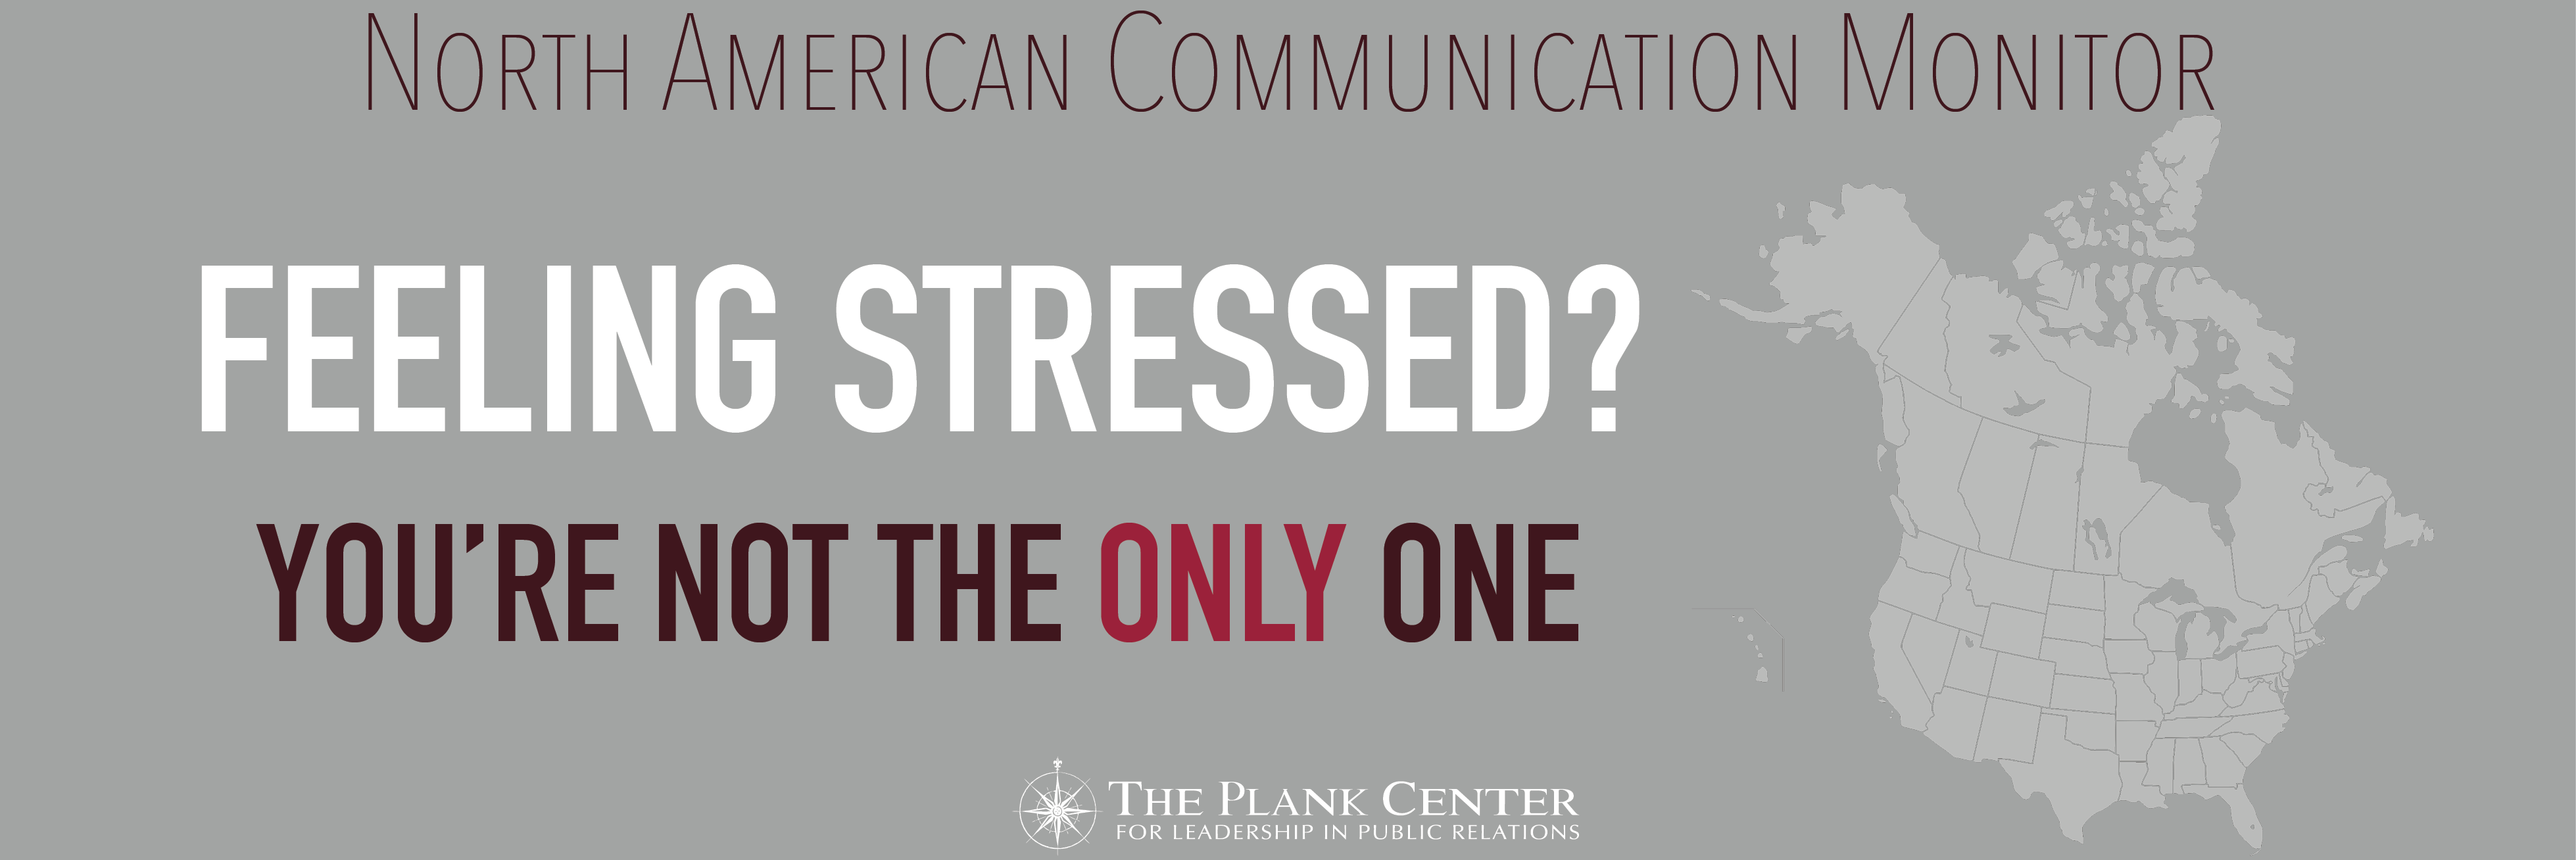 More than half of the communication professionals feel tense or stressed out during a typical work day. Most of the North American practitioners can cope with this. But more than one in ten do not have sufficient resources to cope with their work stress.